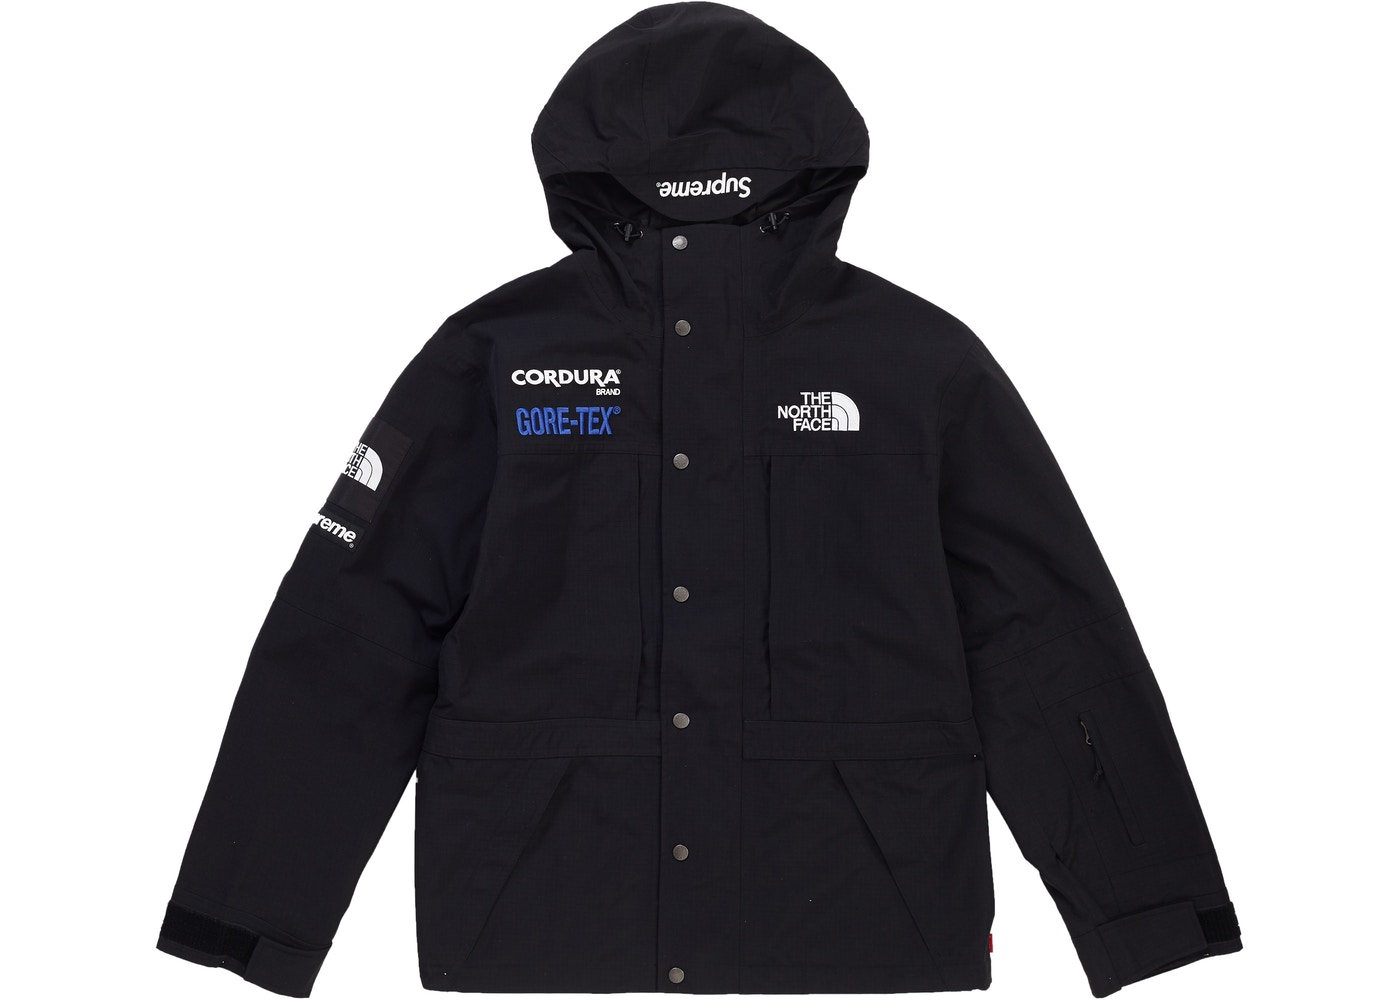 c5ed2e0a8 Supreme The North Face Expedition (FW18) Jacket Black